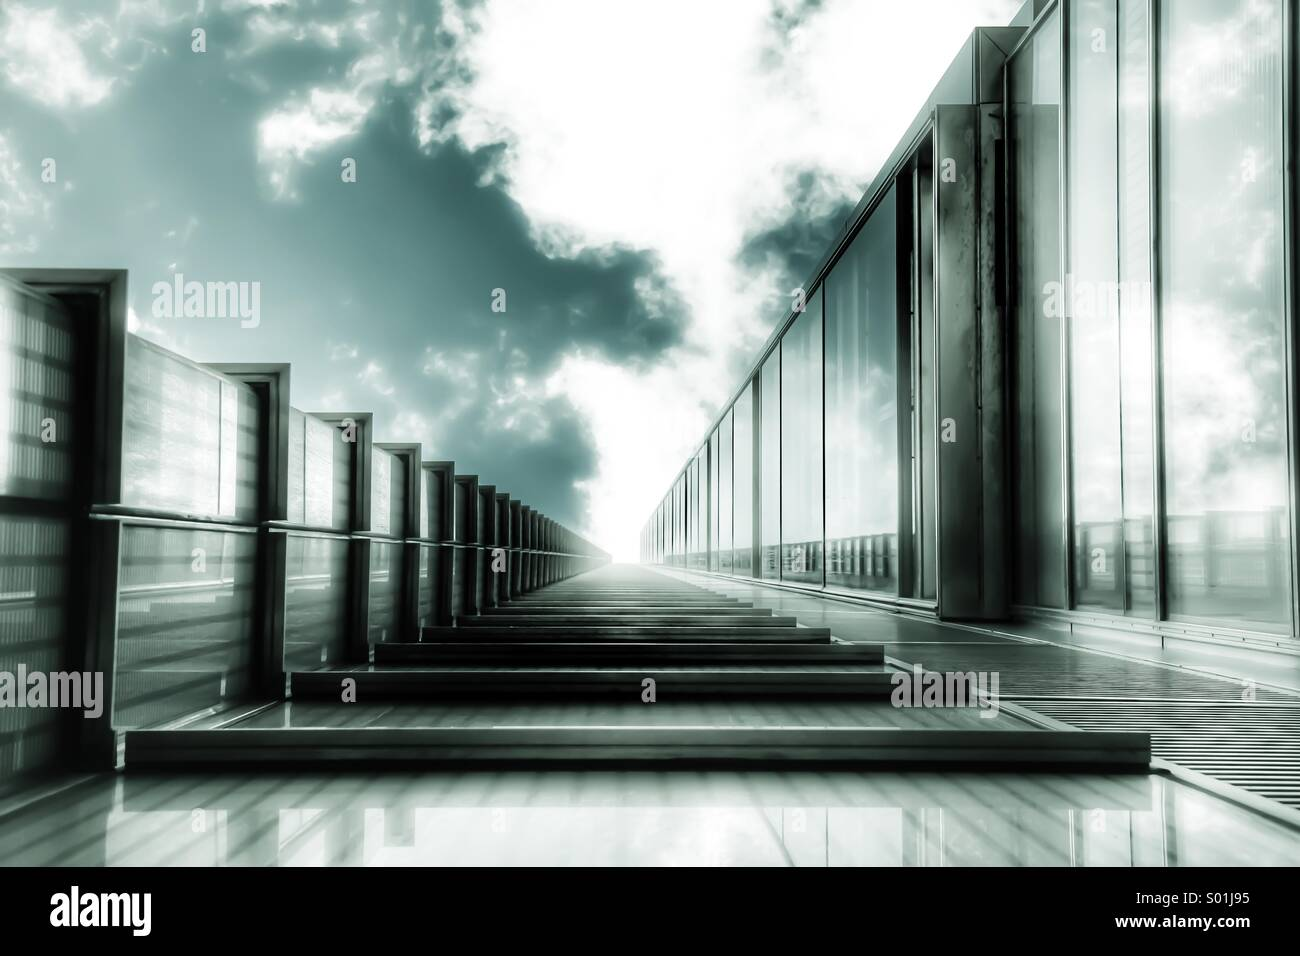 Architectural Vanishing Point - Stock Image